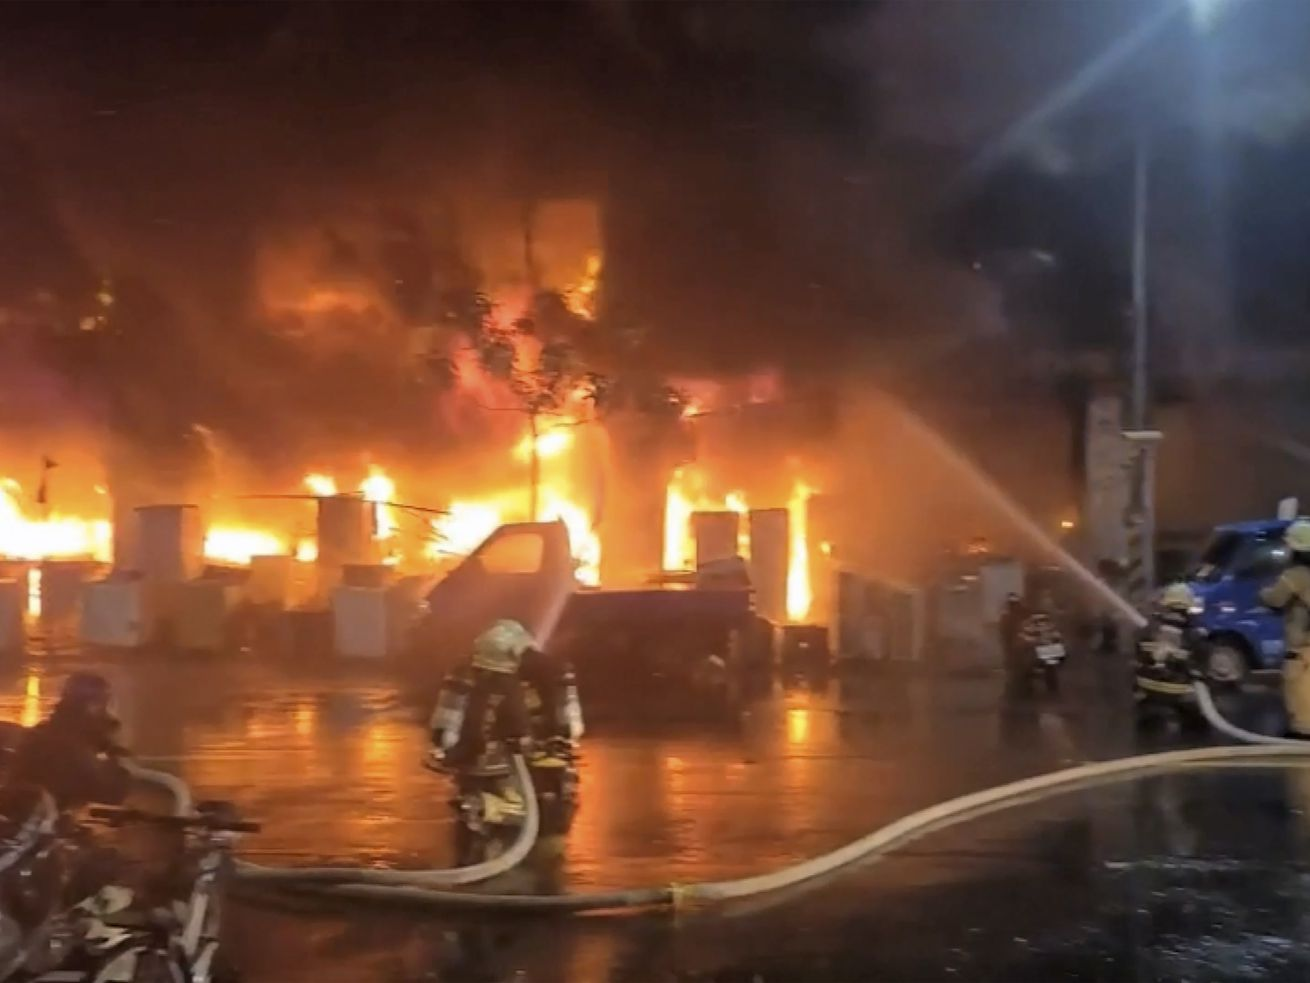 In this image taken from video by Taiwan's EBC, firefighters battle a blaze at a building in Kaohsiung, in southern Taiwan on Thursday, Oct. 14, 2021. The fire engulfed a 13-story building overnight in southern Taiwan, the island's semi-official Central News Agency reported Thursday.